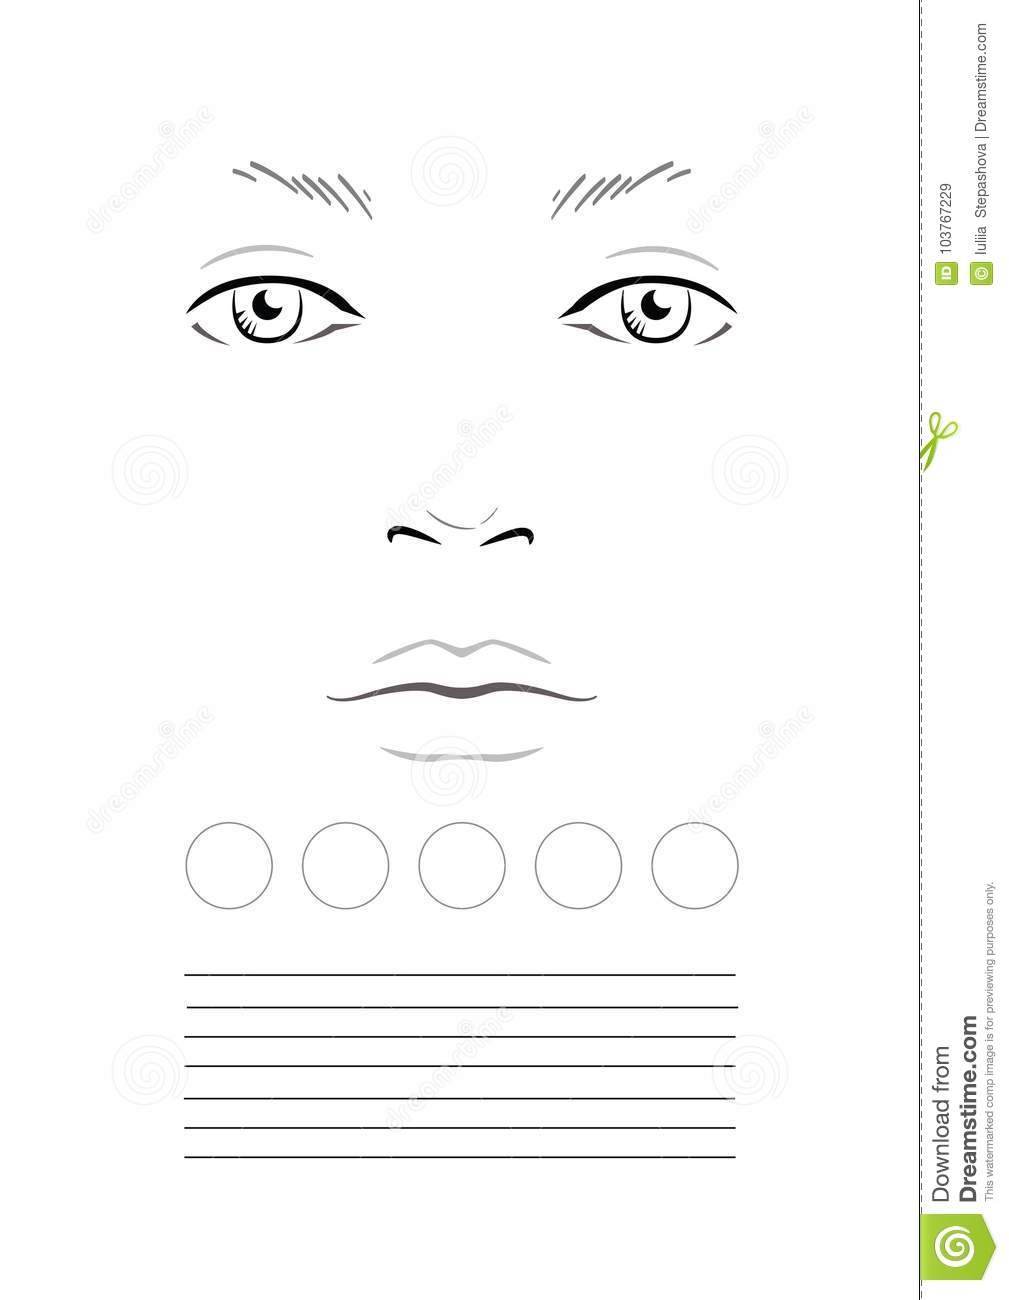 Face chart makeup artist blank template stock illustration download face chart makeup artist blank template stock illustration illustration of eyes maxwellsz